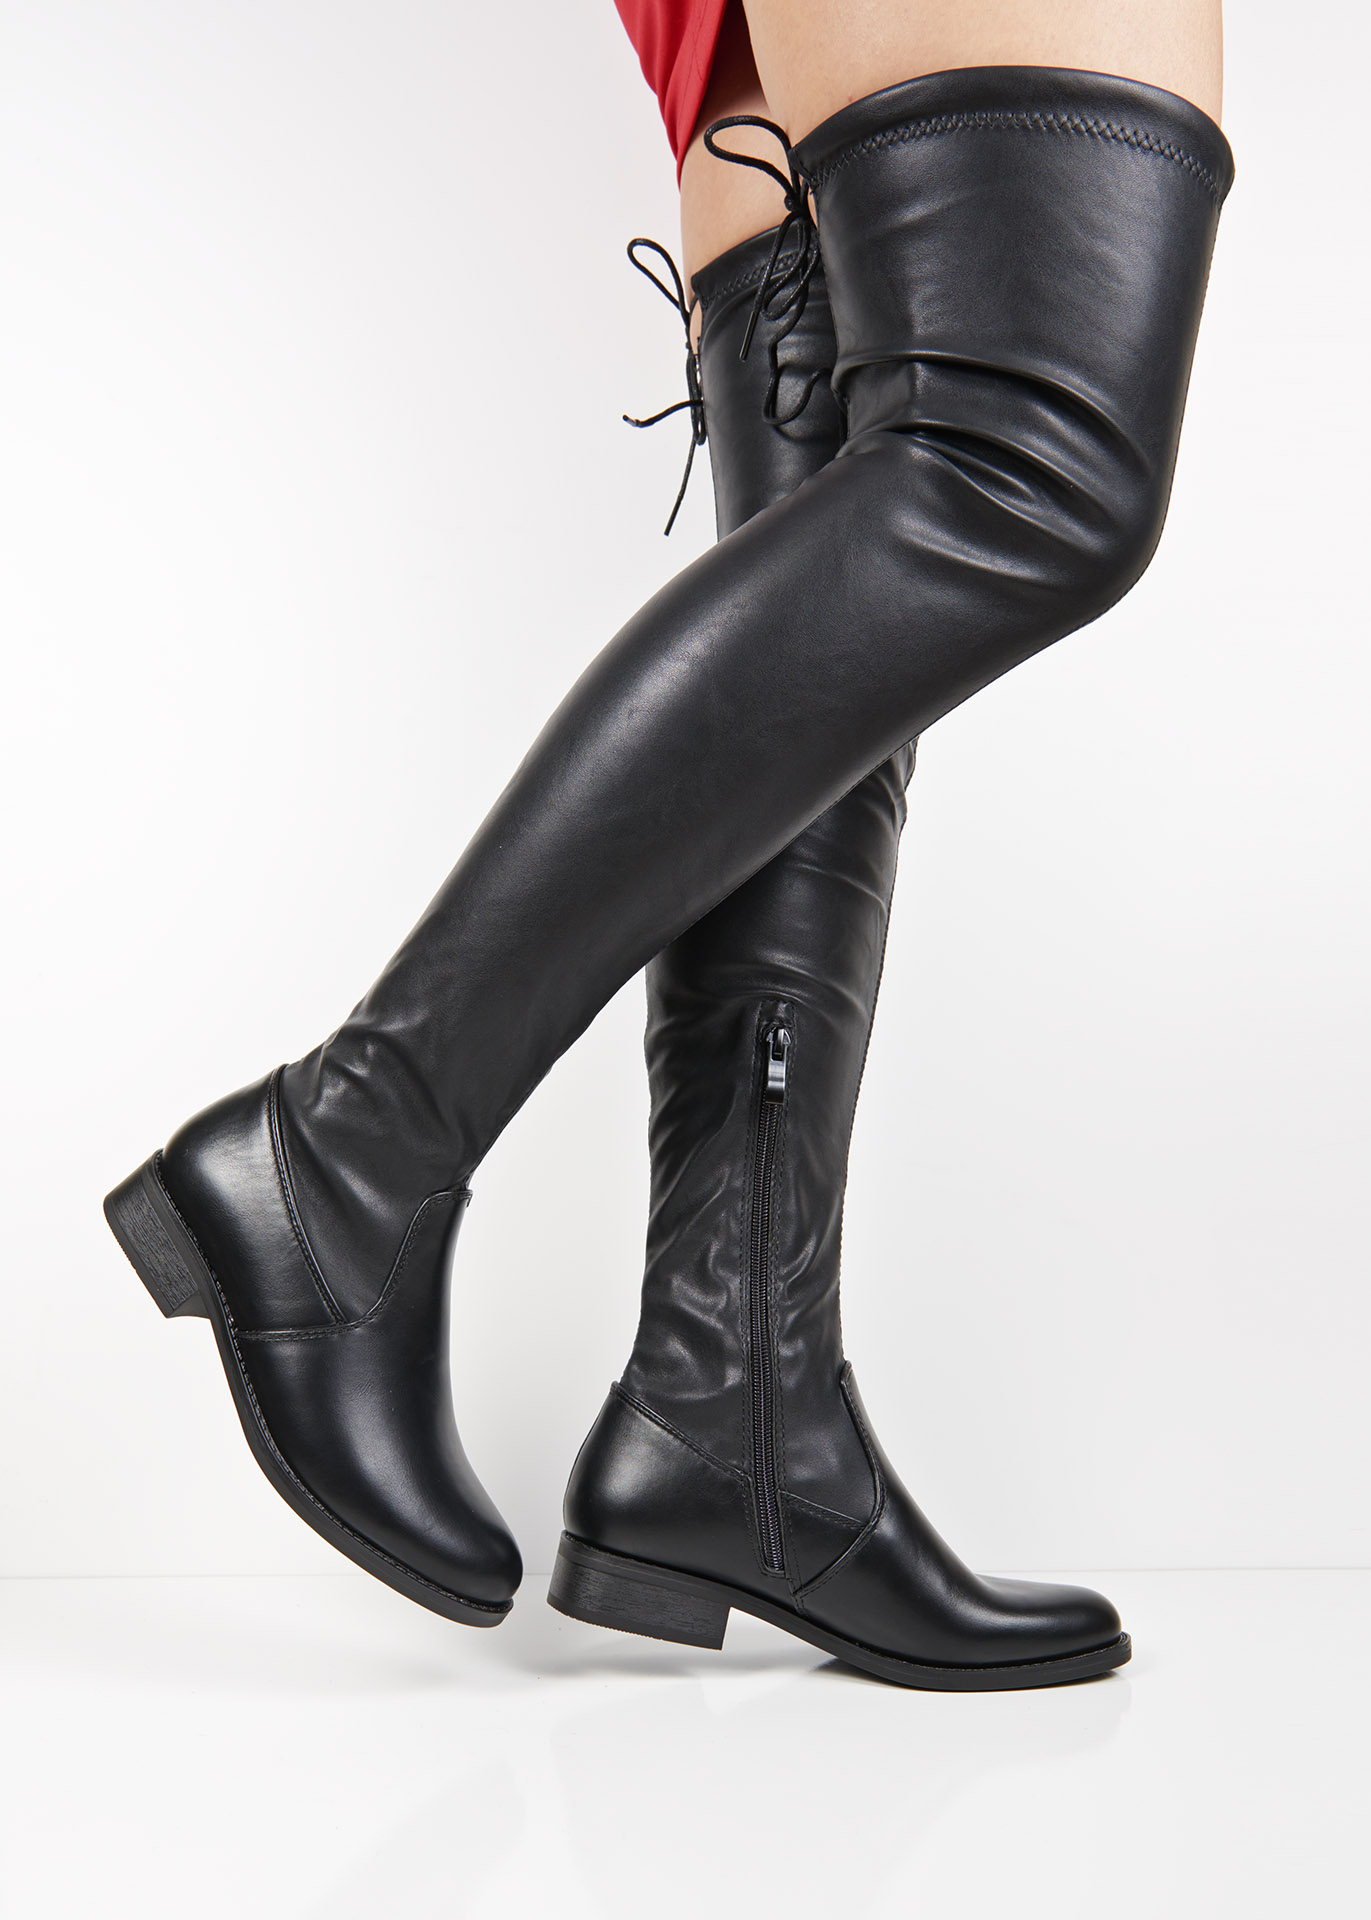 ae3f04188b4 C7189 Black flat over the knee boots